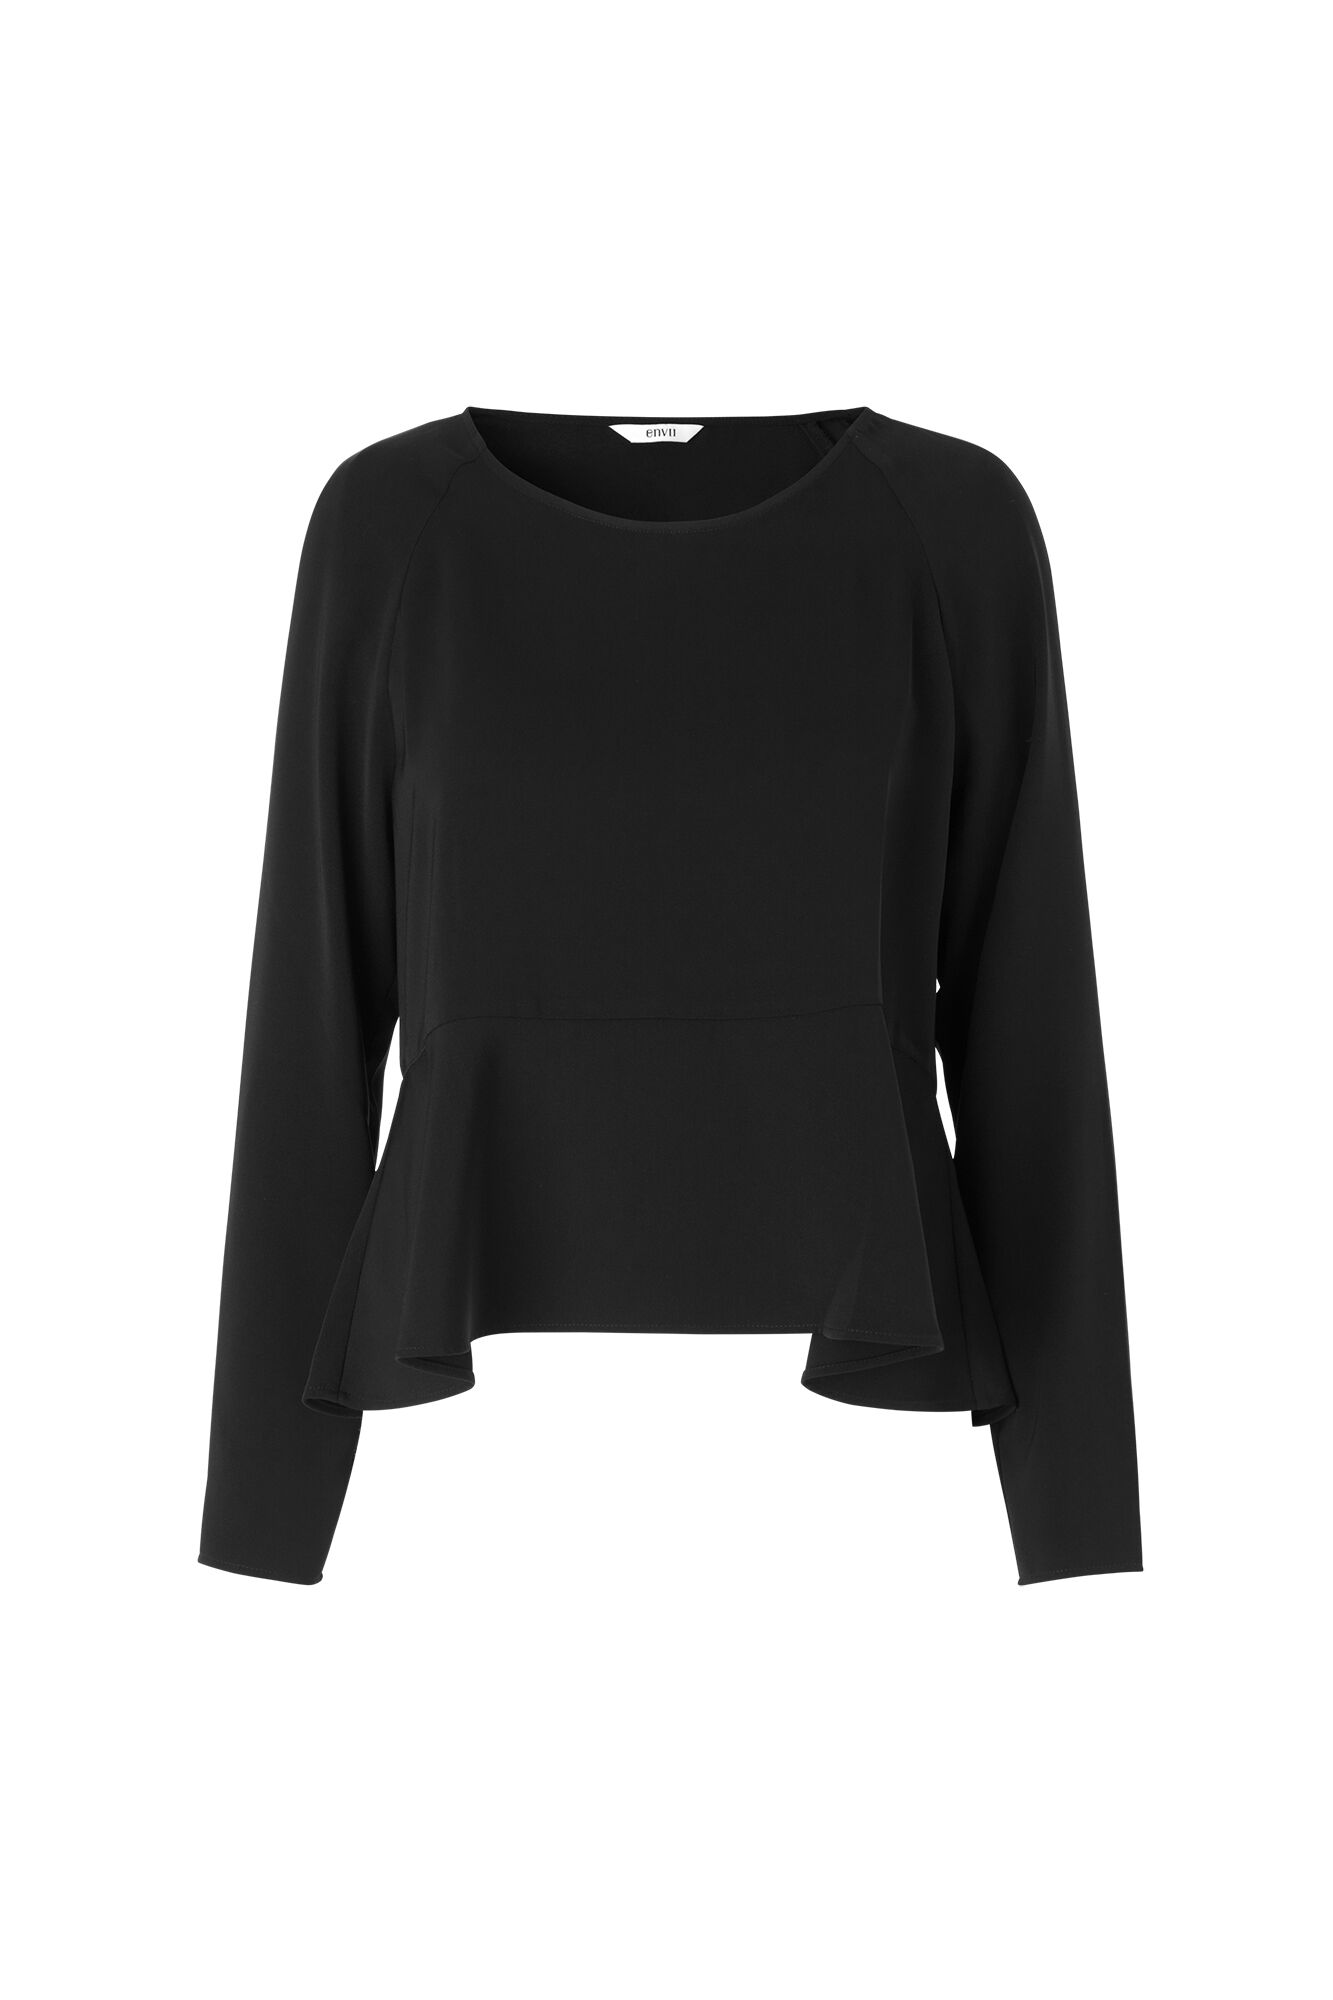 ENALPS LS TOP 6392, BLACK